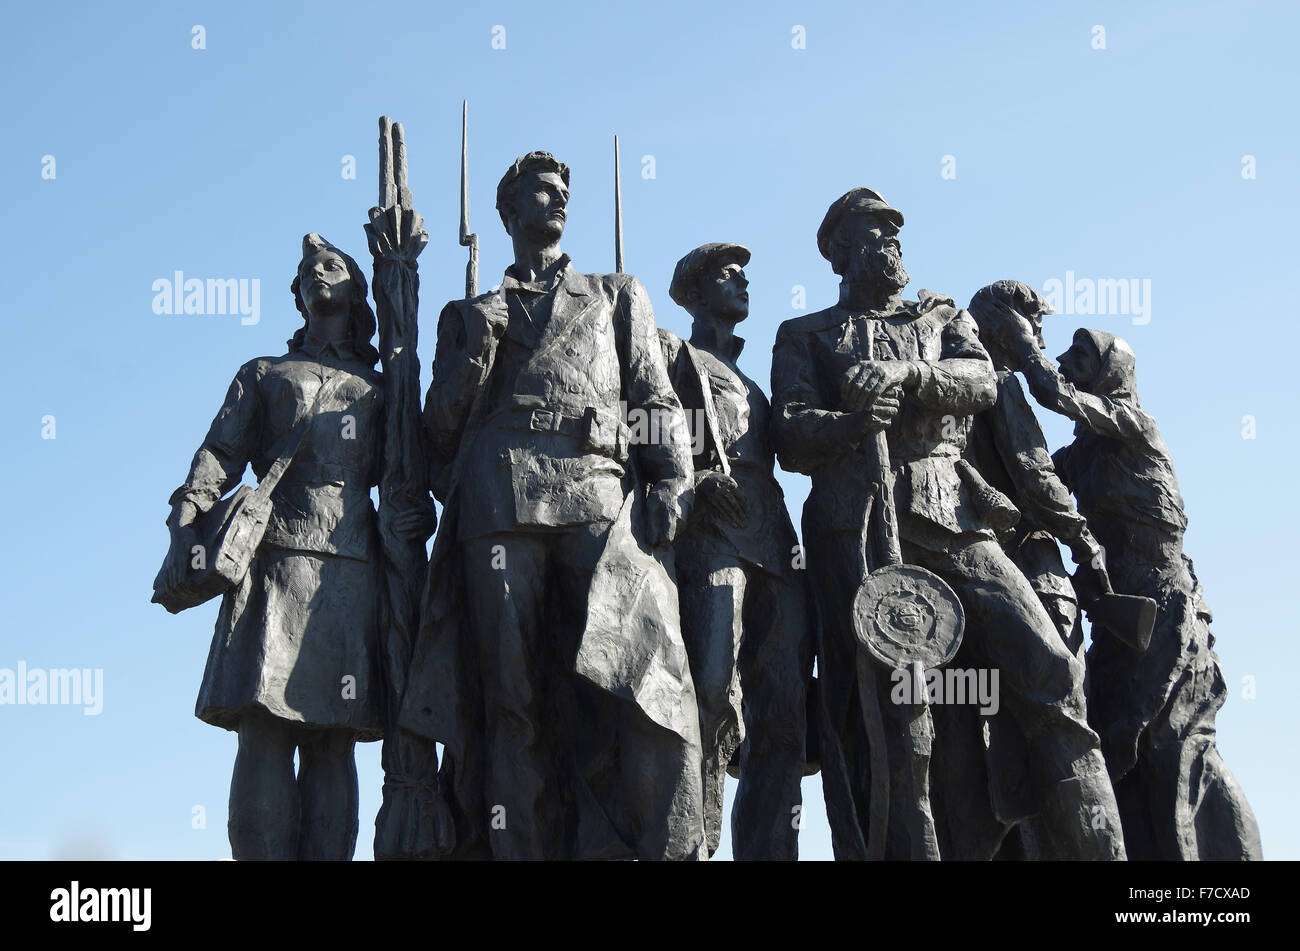 St Petersburg, Leningrad Memorial to Siege 1941-5 - Stock Image